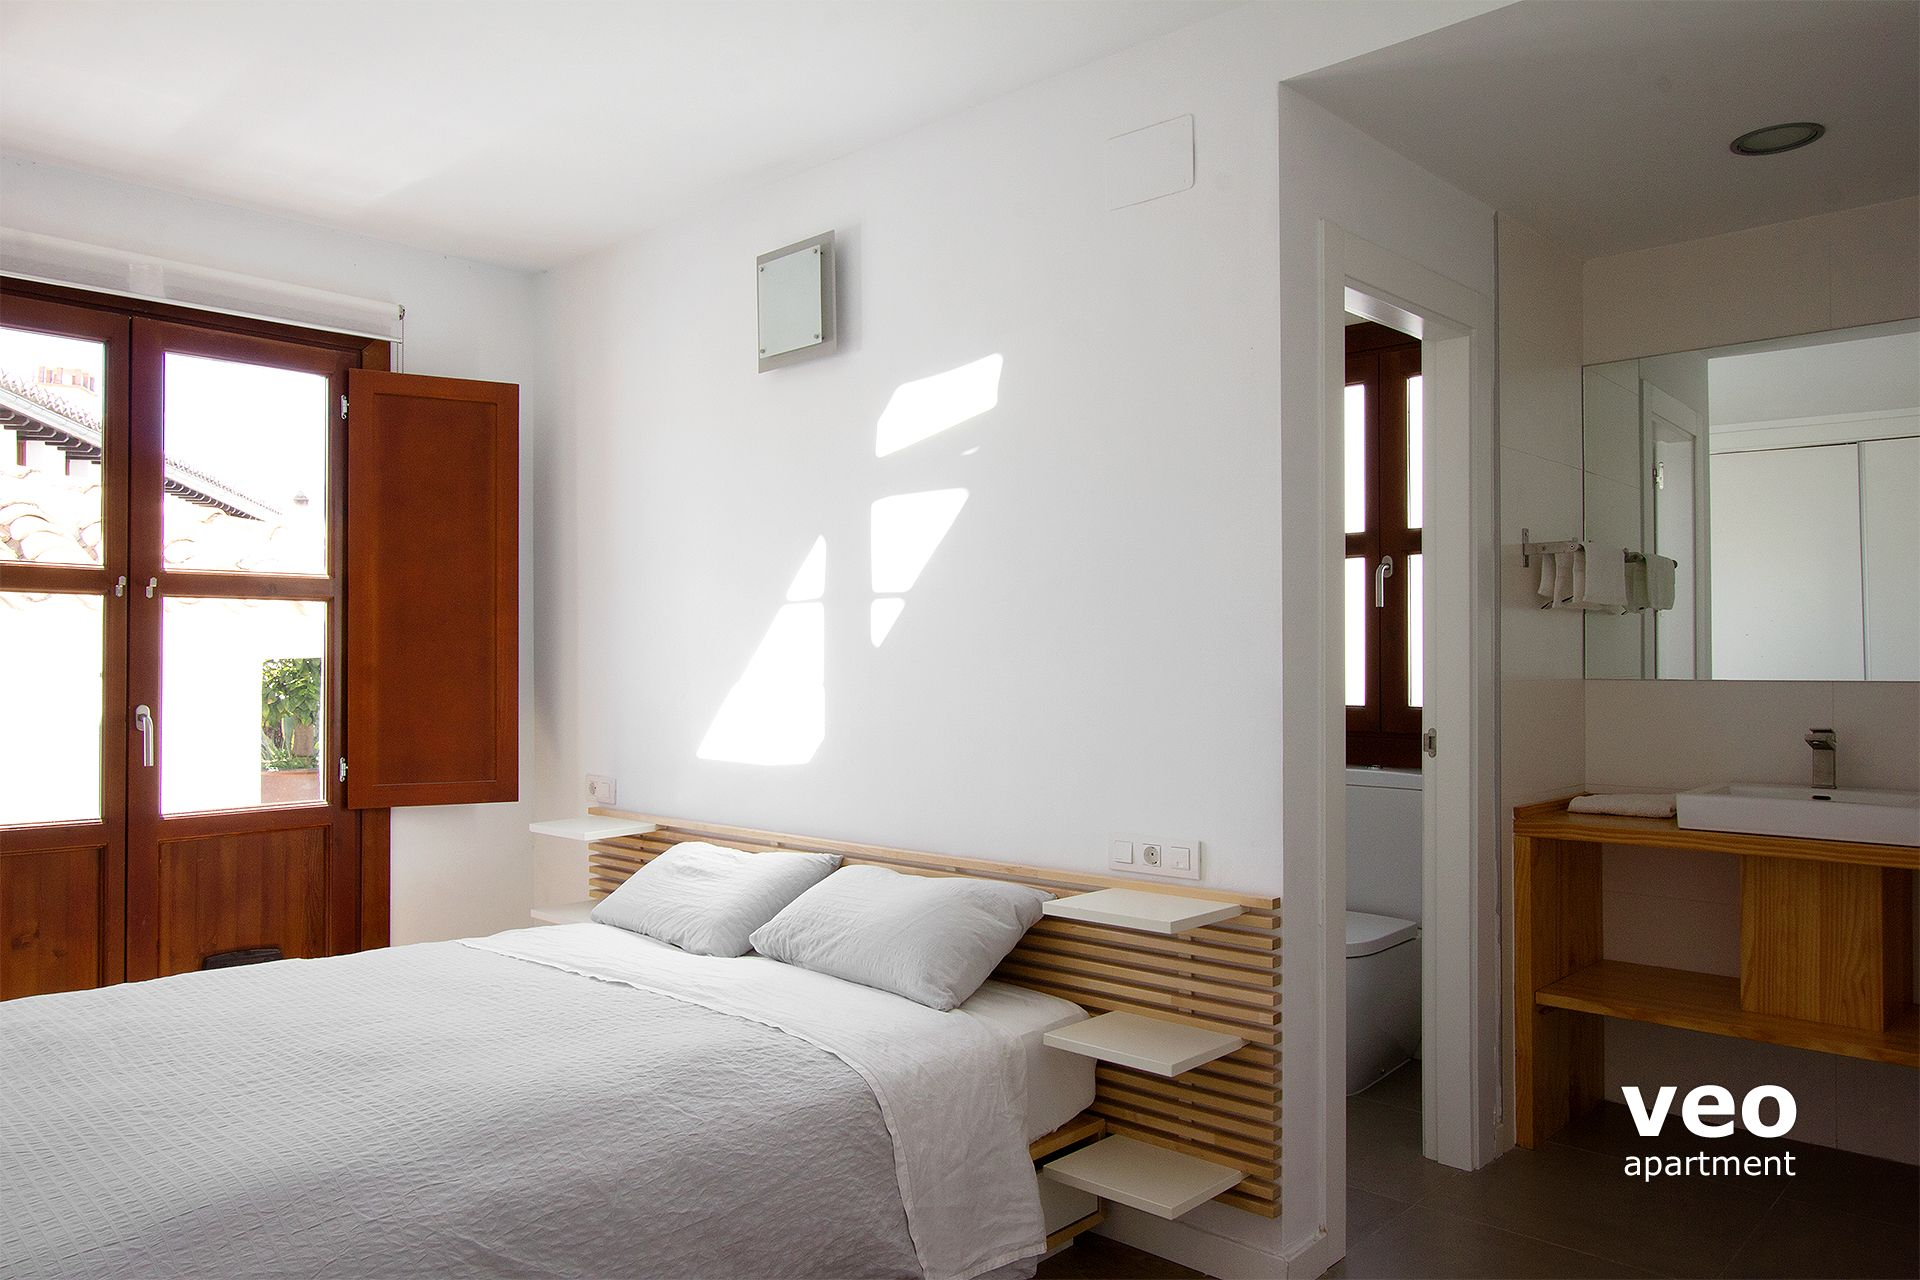 master the apartments suite apartment jos jose street en alta has san bedroom terrace bathroom veo granada an spain